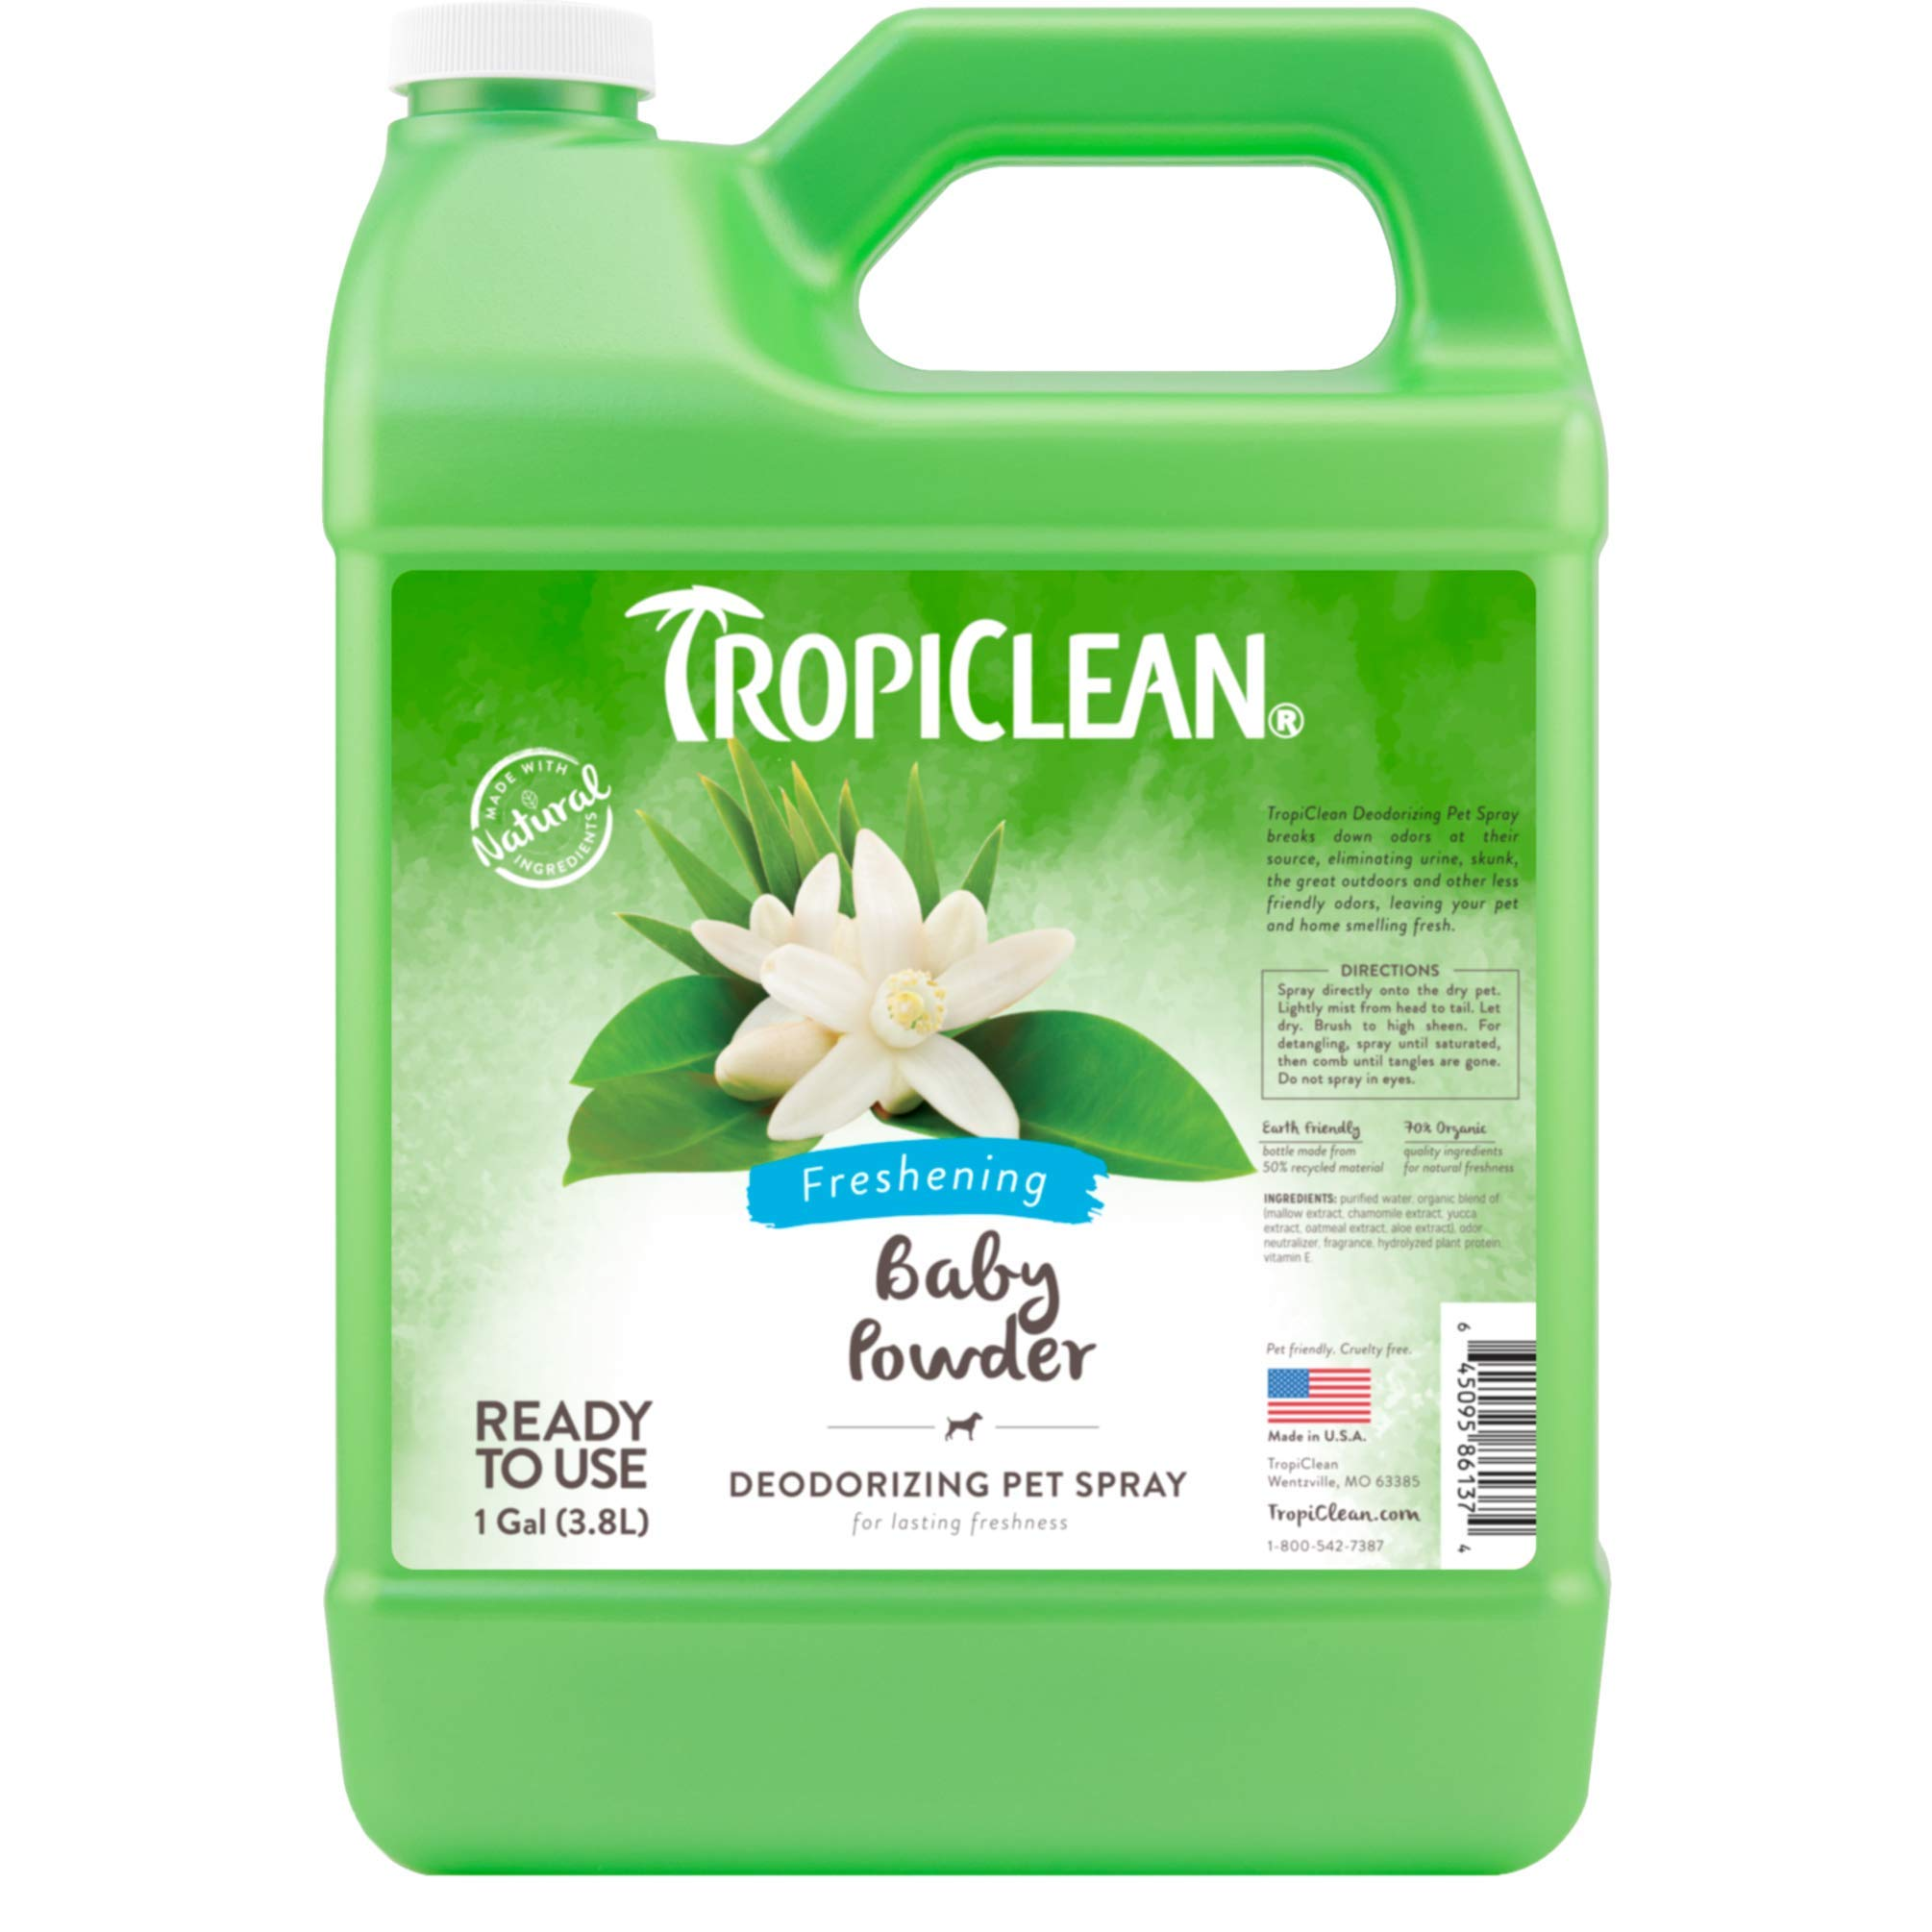 TropiClean Baby Powder Deodorizing Spray for Pets, 1 gal, Made in USA by TropiClean